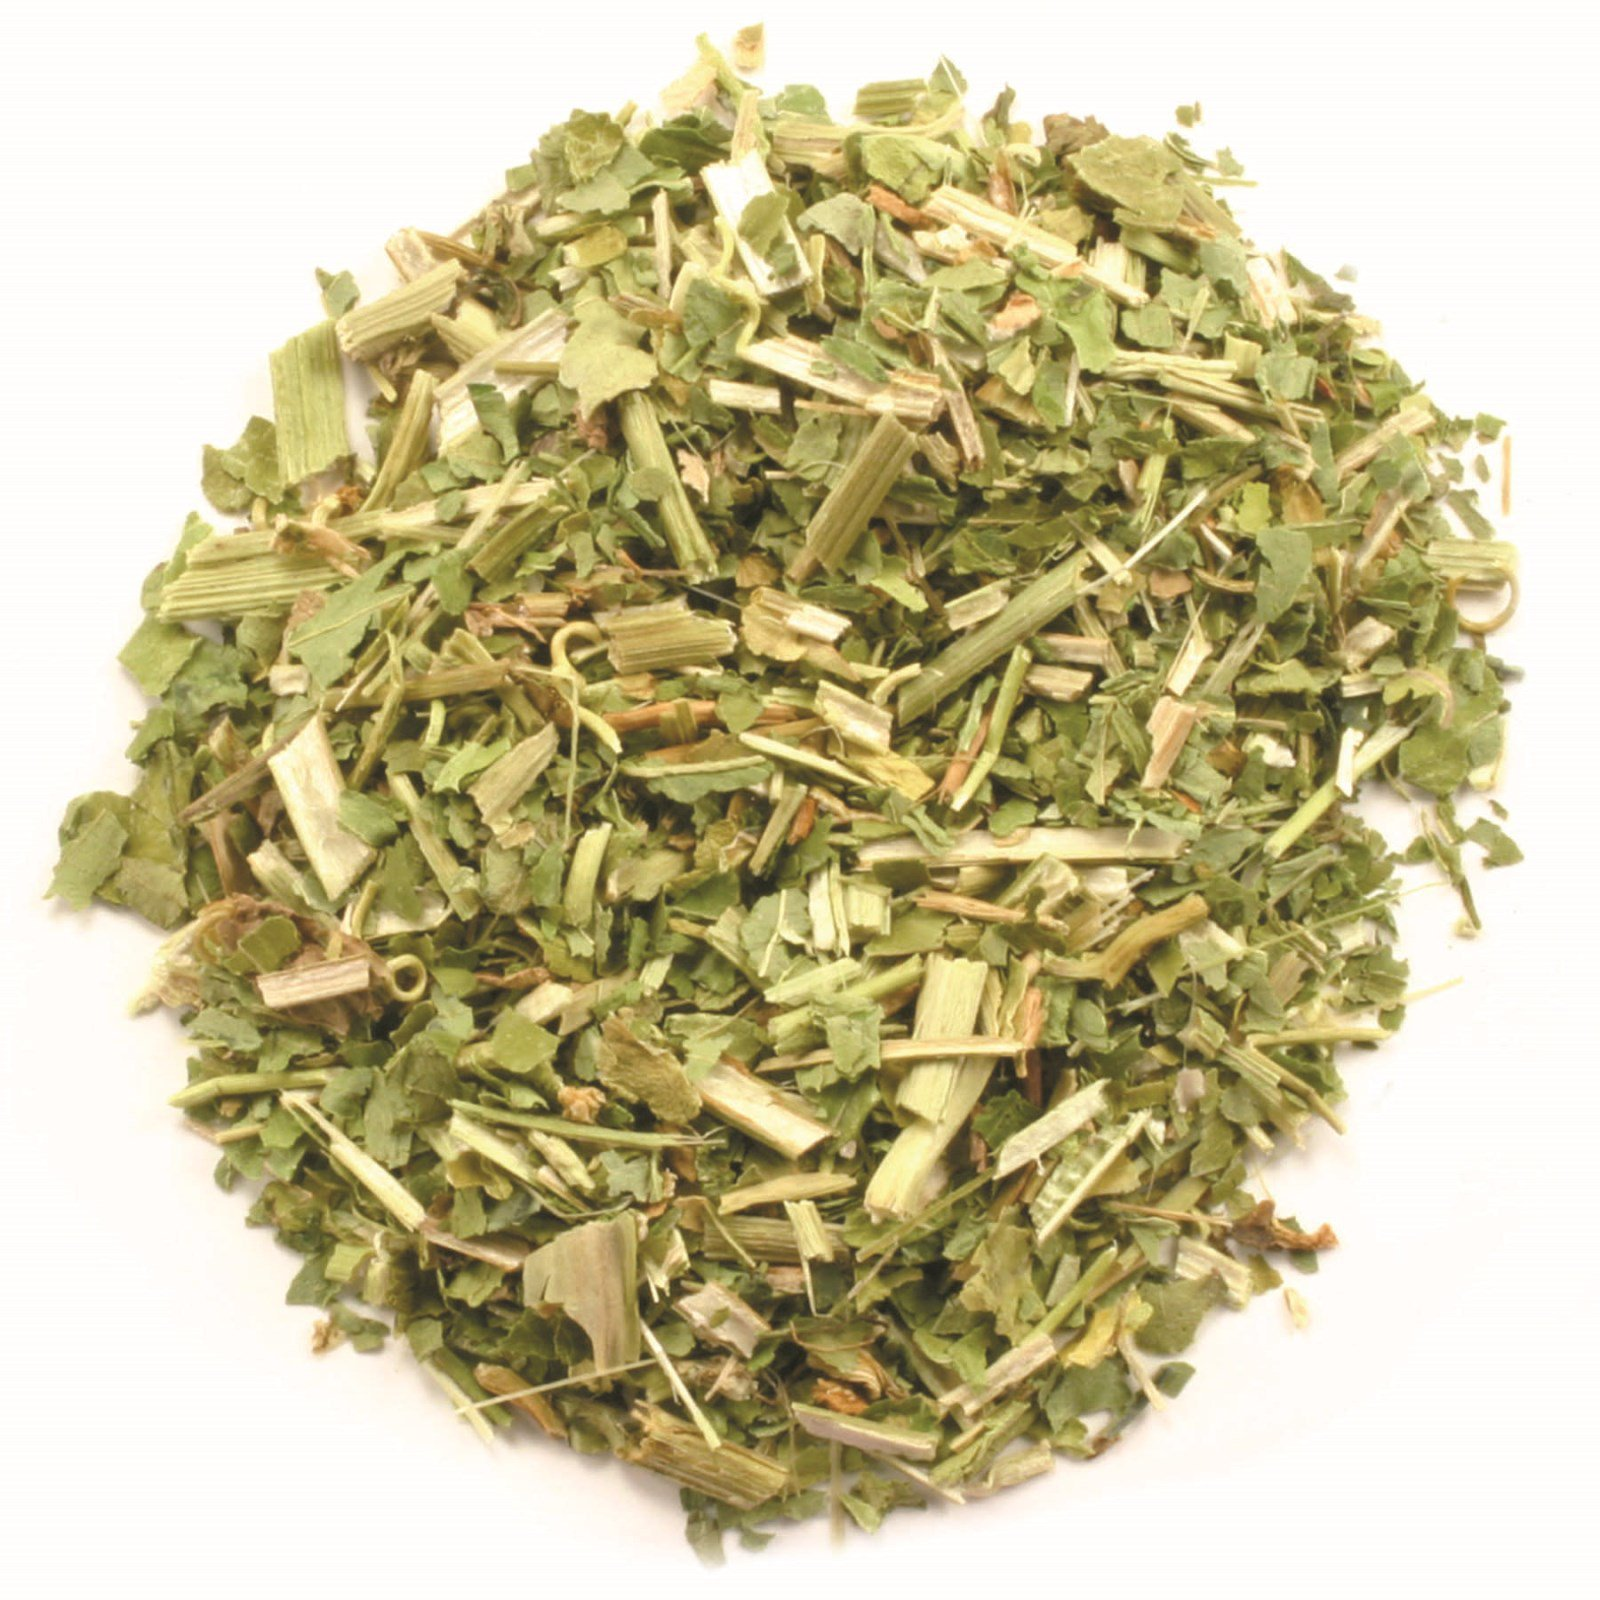 Passion Flower Herb Cut Sifted Frontier Natural Products 1 Lb